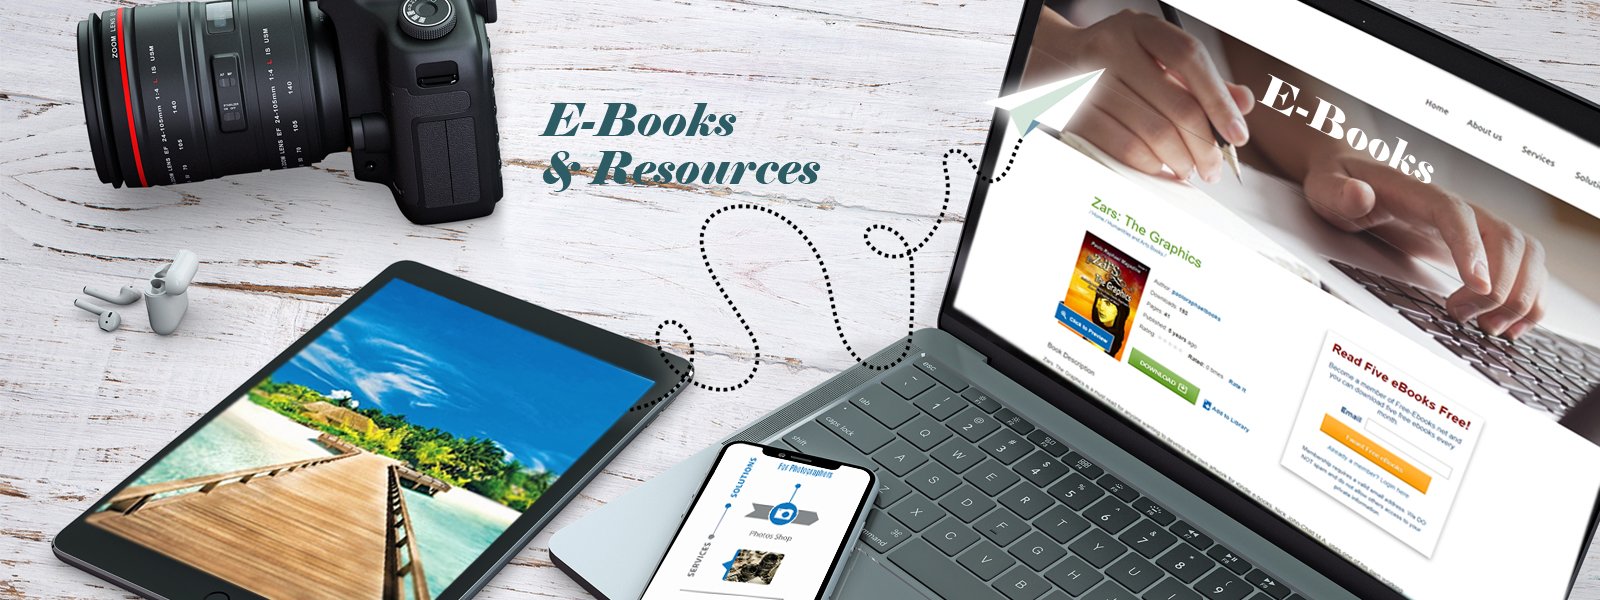 Distinctive e-books, professional resources and eye-catching photos for sale